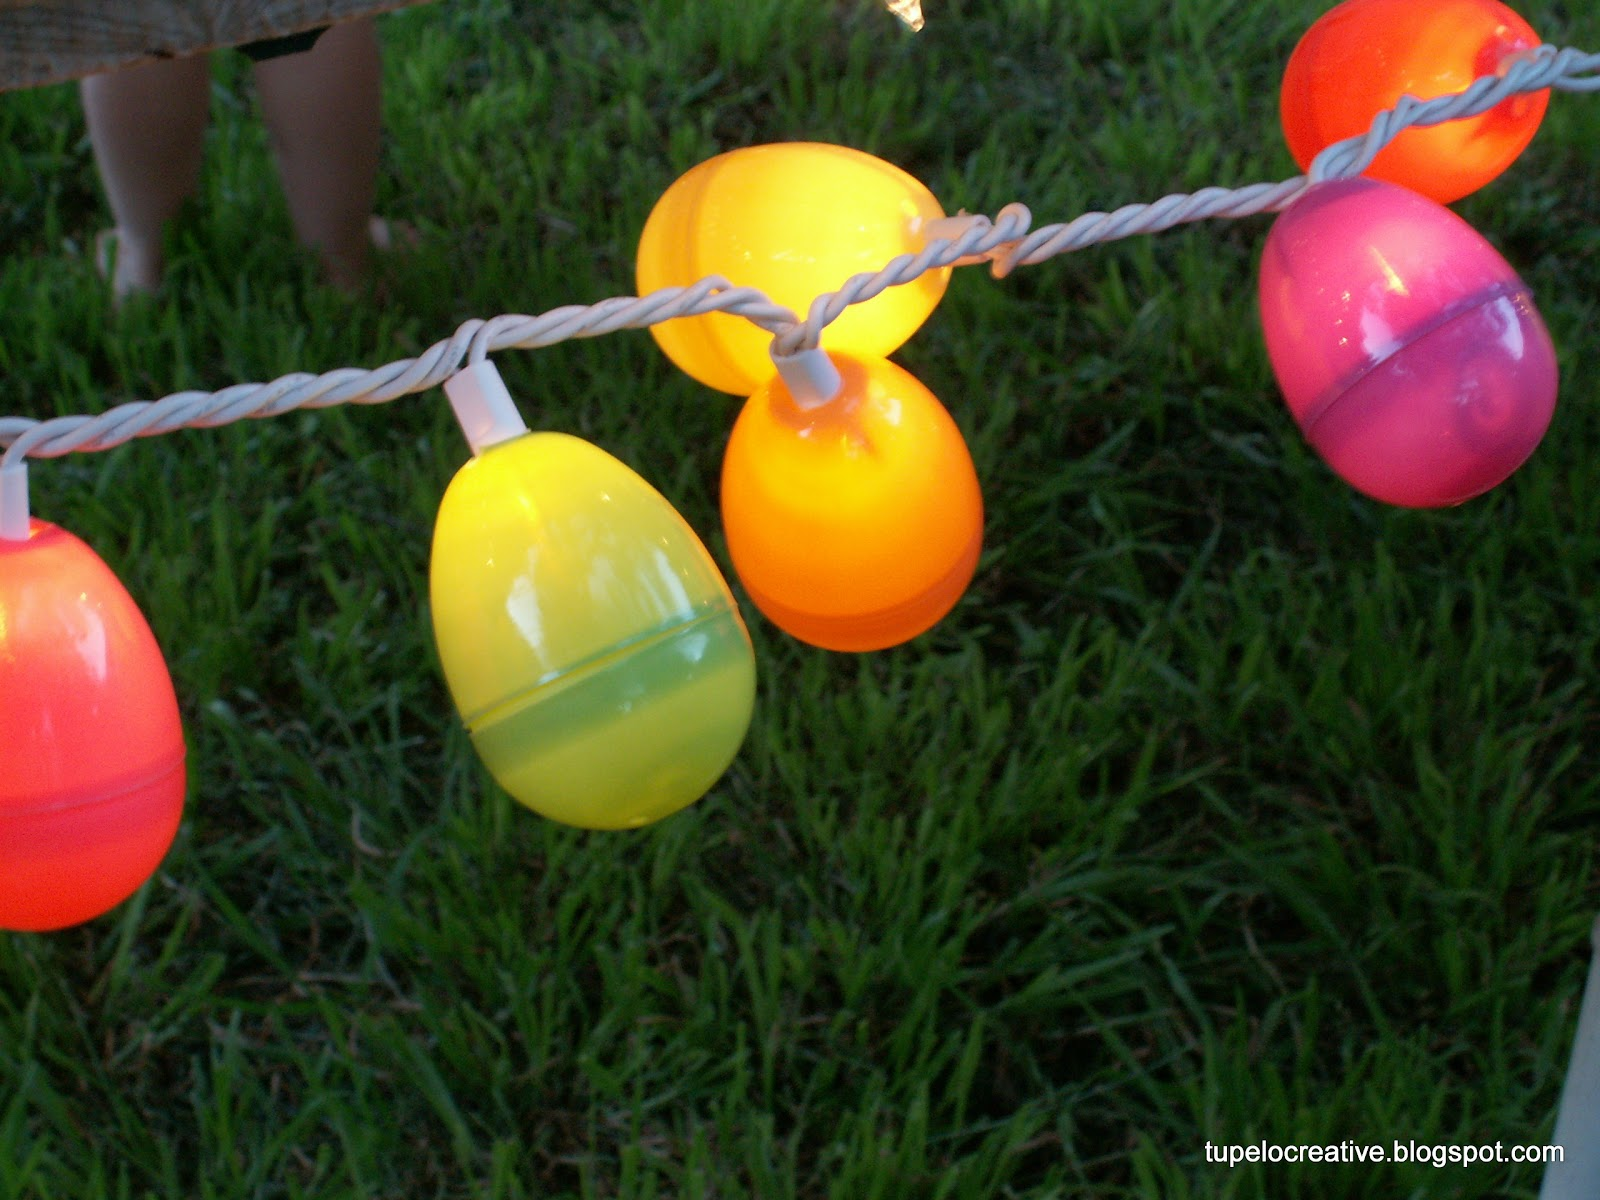 Tupelo Creative: Easter Project - Egg String Lights Tutorial